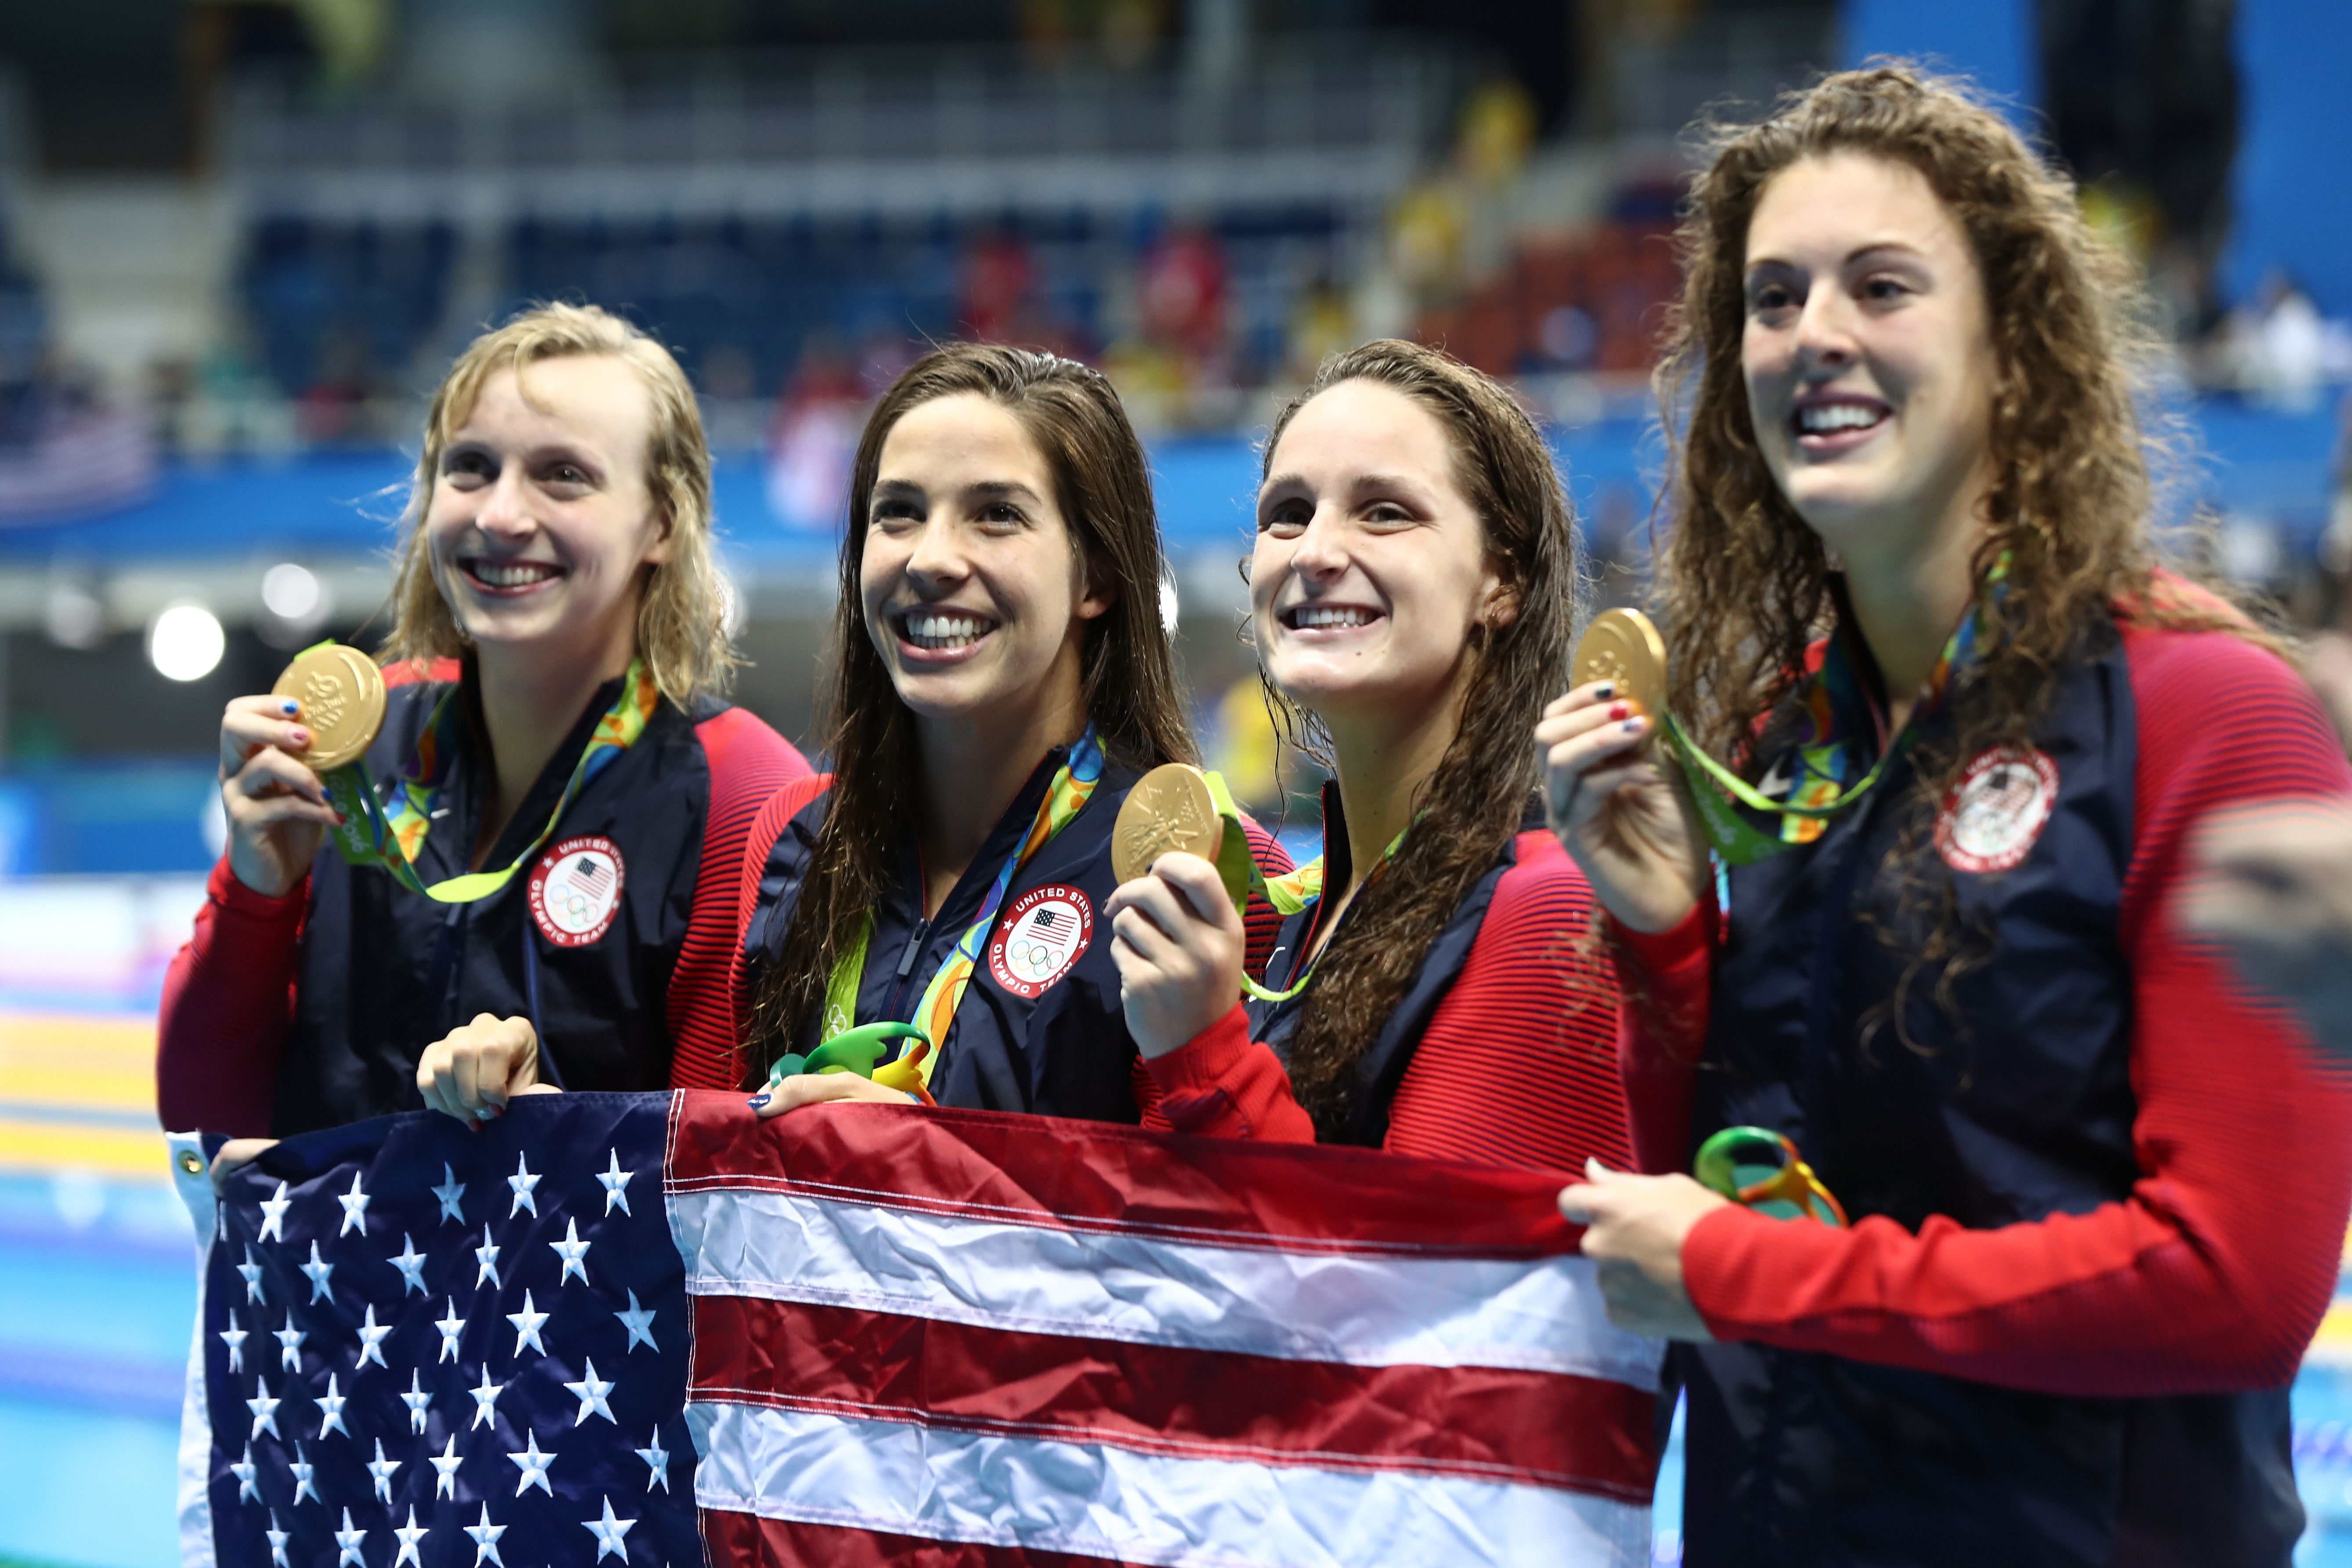 Gold medalists Allison Schmitt, Leah Smith, Maya Dirado, and Katie Ledecky of the United States pose on the podium.